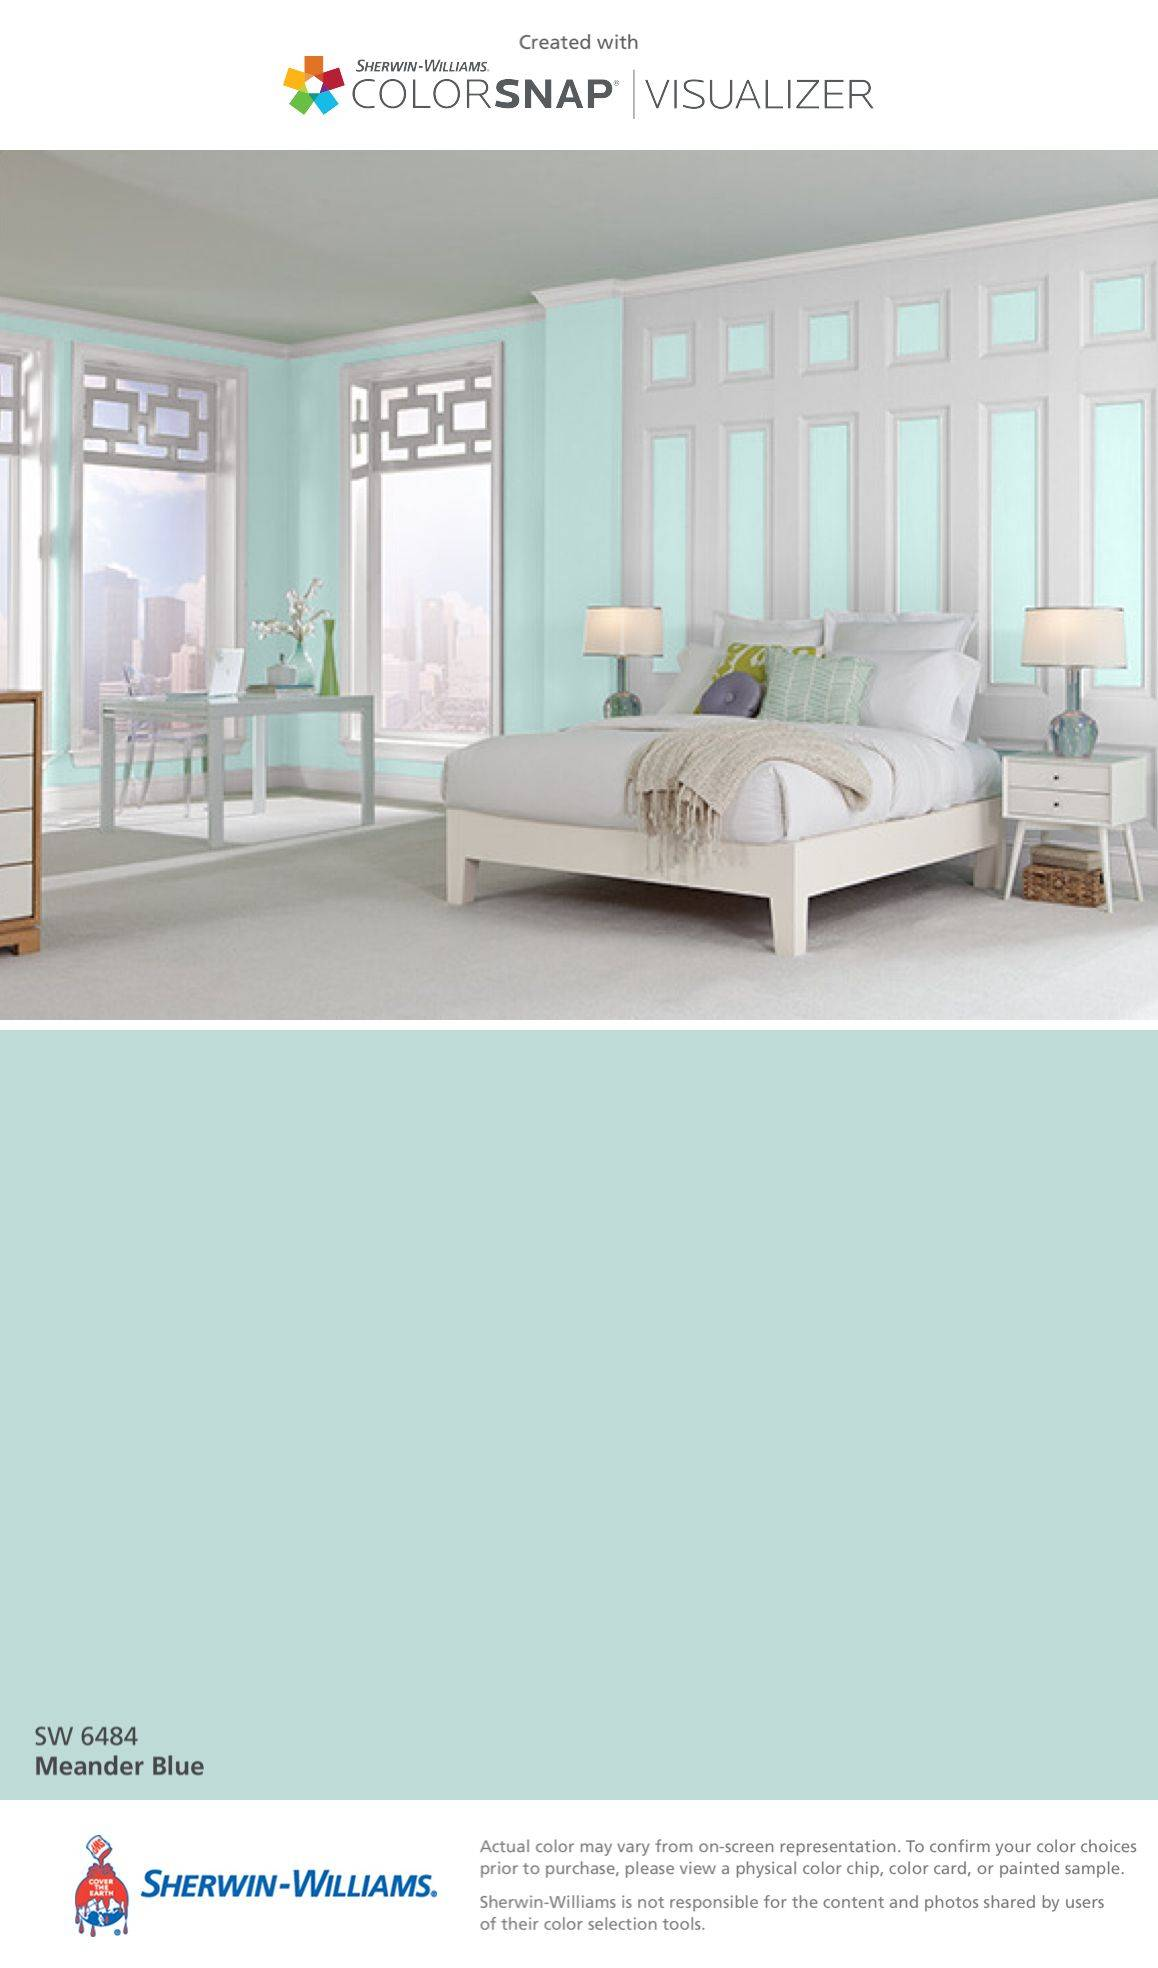 Silver Strand Sherwin Williams Bedroom Elegant I Found This Color with Colorsnap Visualizer for iPhone by